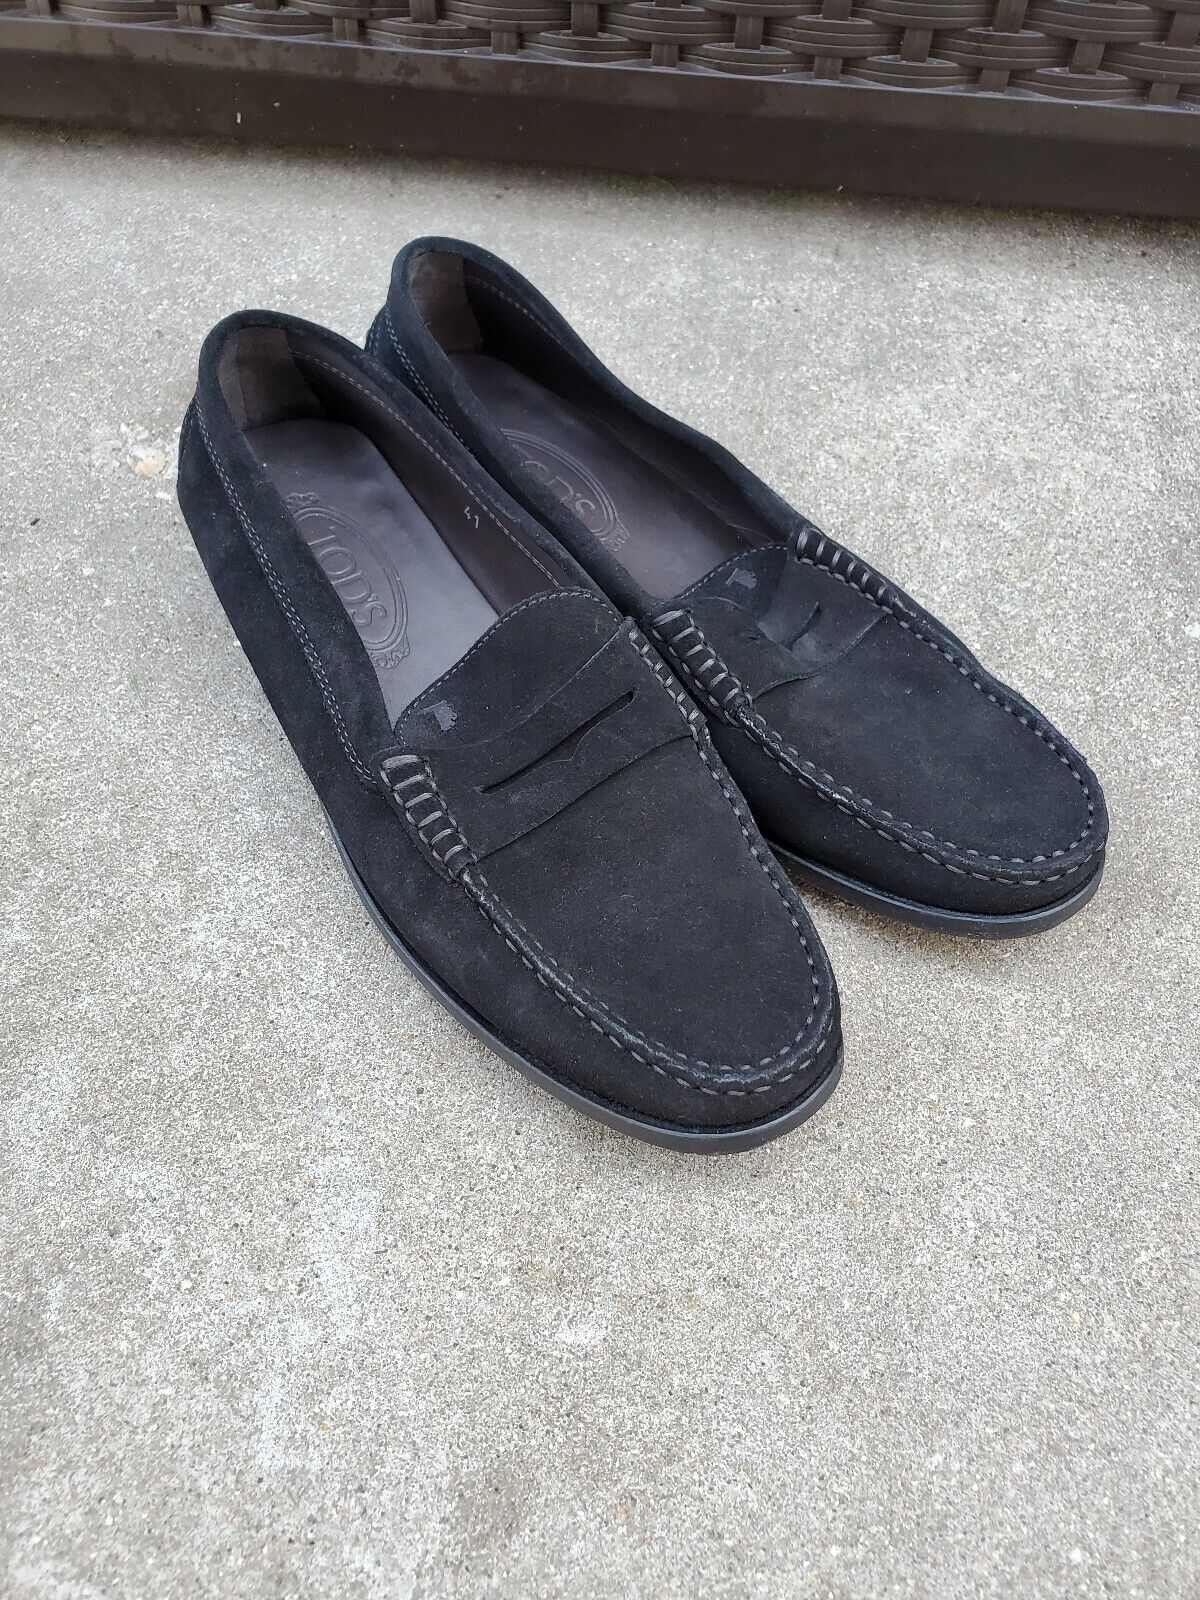 Tods donna nero suede leather loafers 41